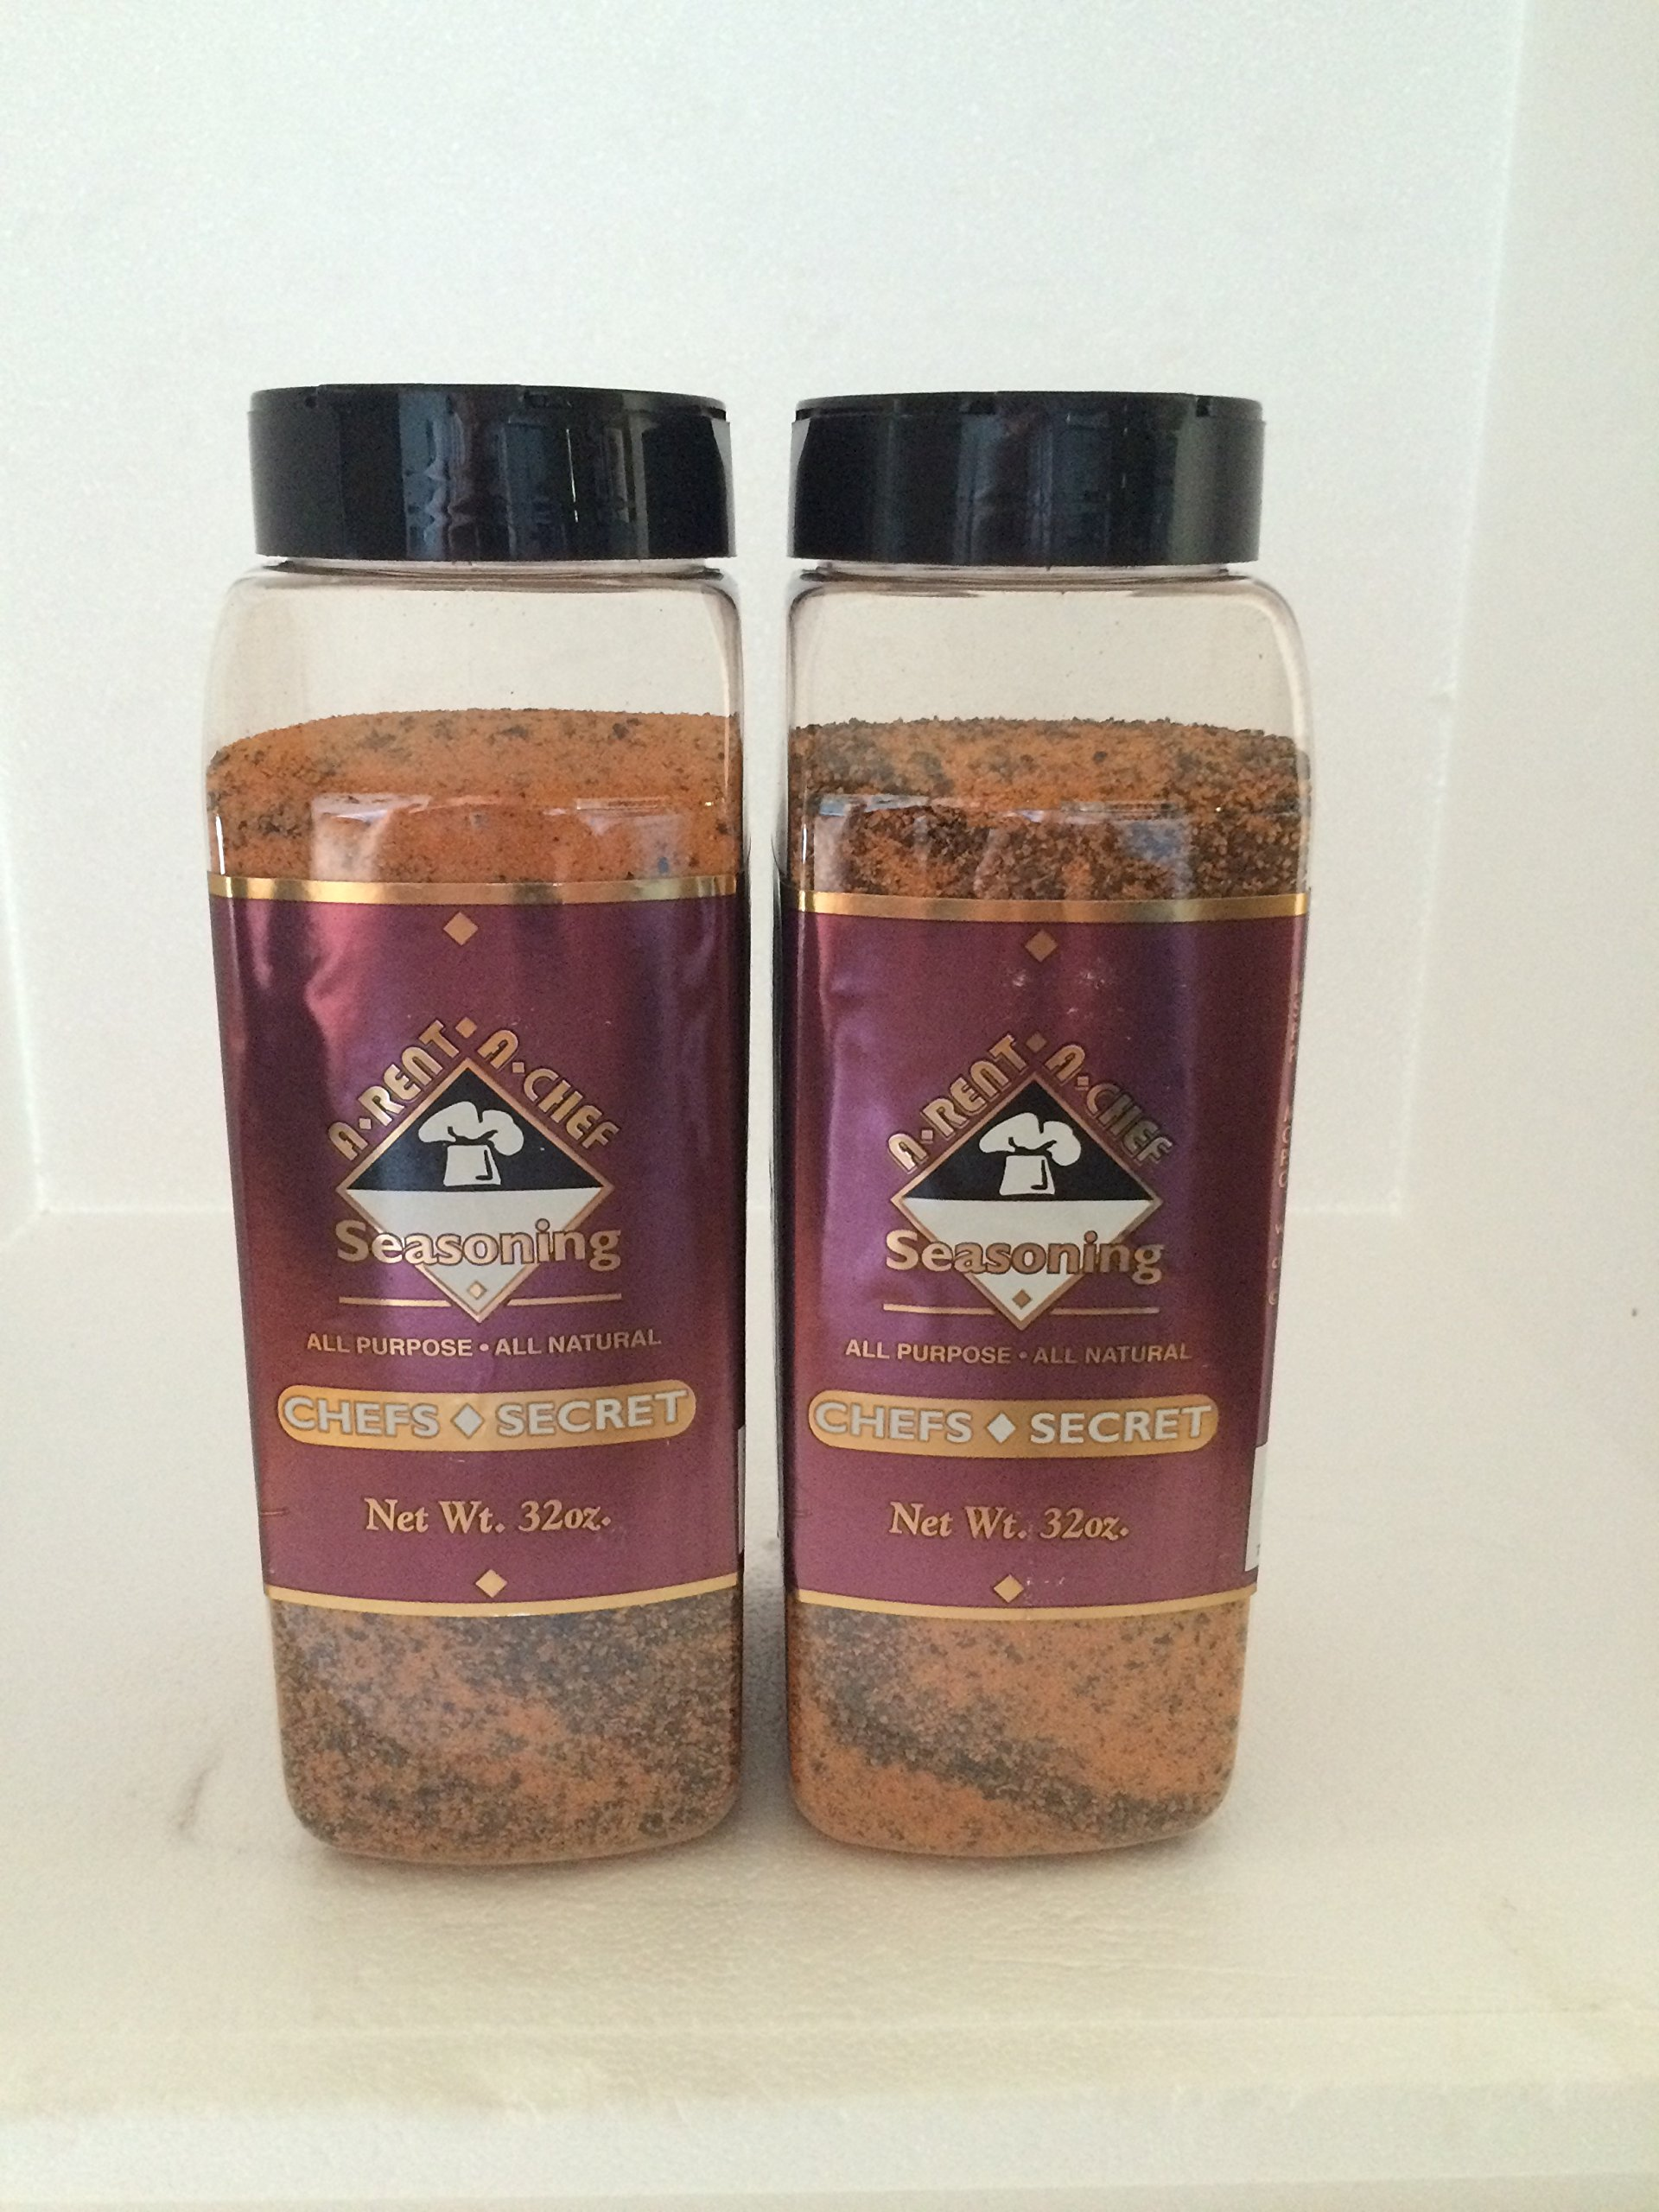 A-Rent-A-Chef All Natural ''Chef Secret 32/oz.'' Seasoning 2 Pack